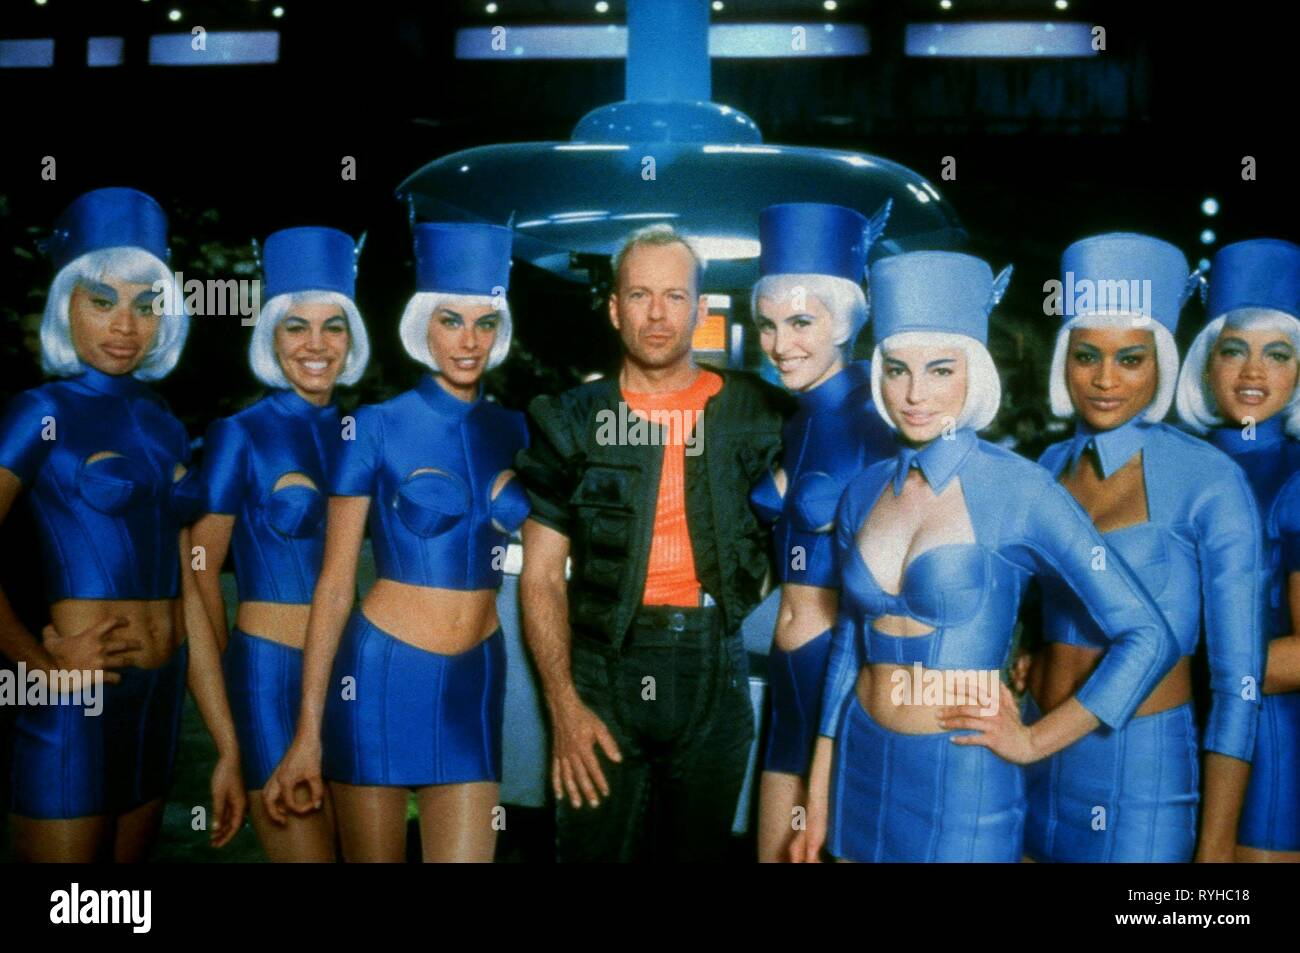 BRUCE WILLIS WITH STEWARDESSES, THE FIFTH ELEMENT, 1997 - Stock Image